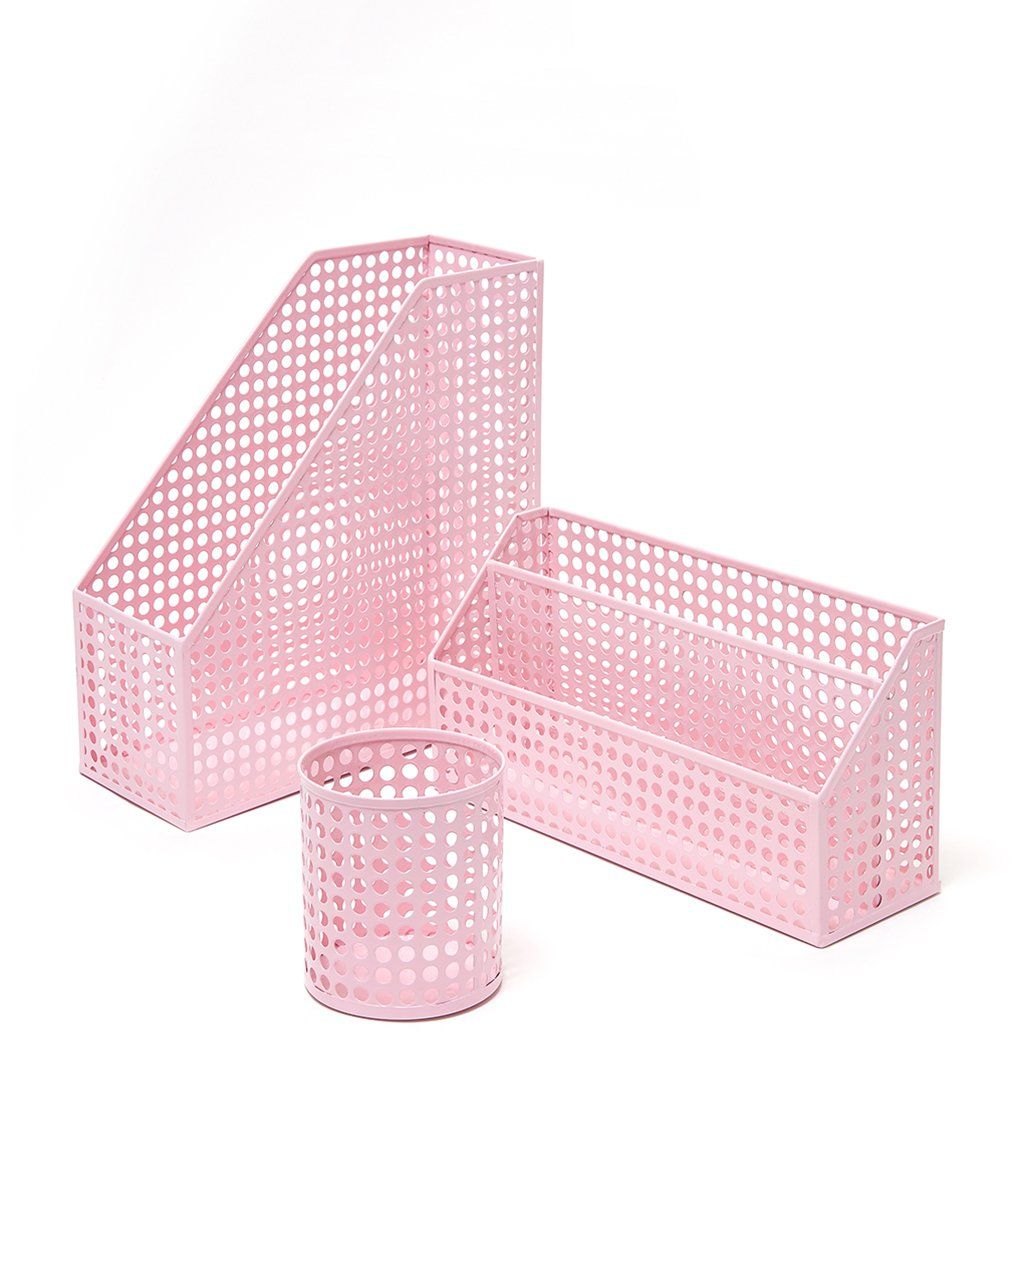 Superieur Pink Desk Accessories Bundle From Ban.do